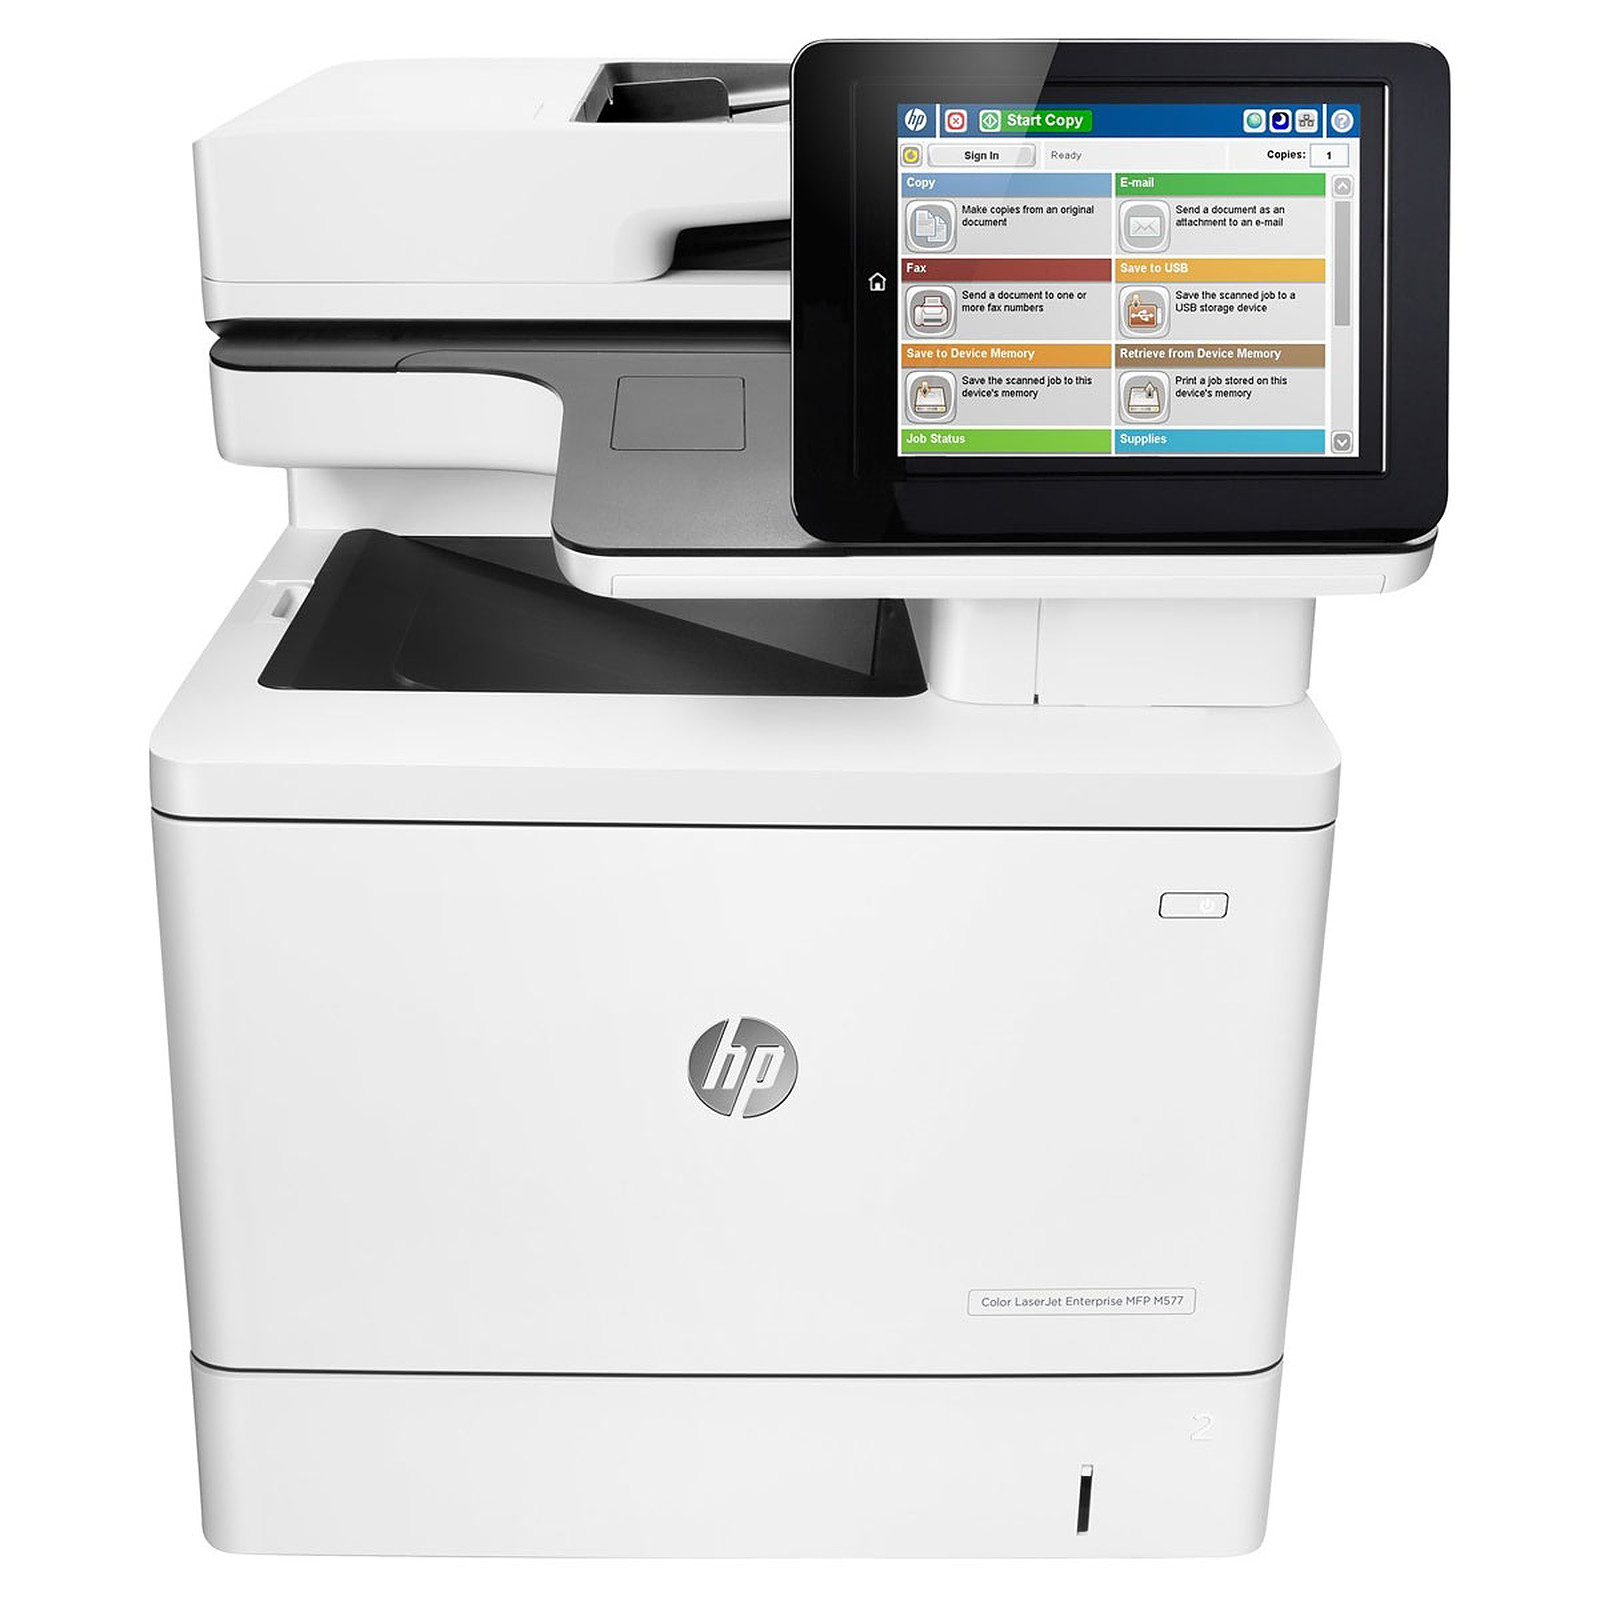 HP LaserJet Color Enterprise MFP M577dn